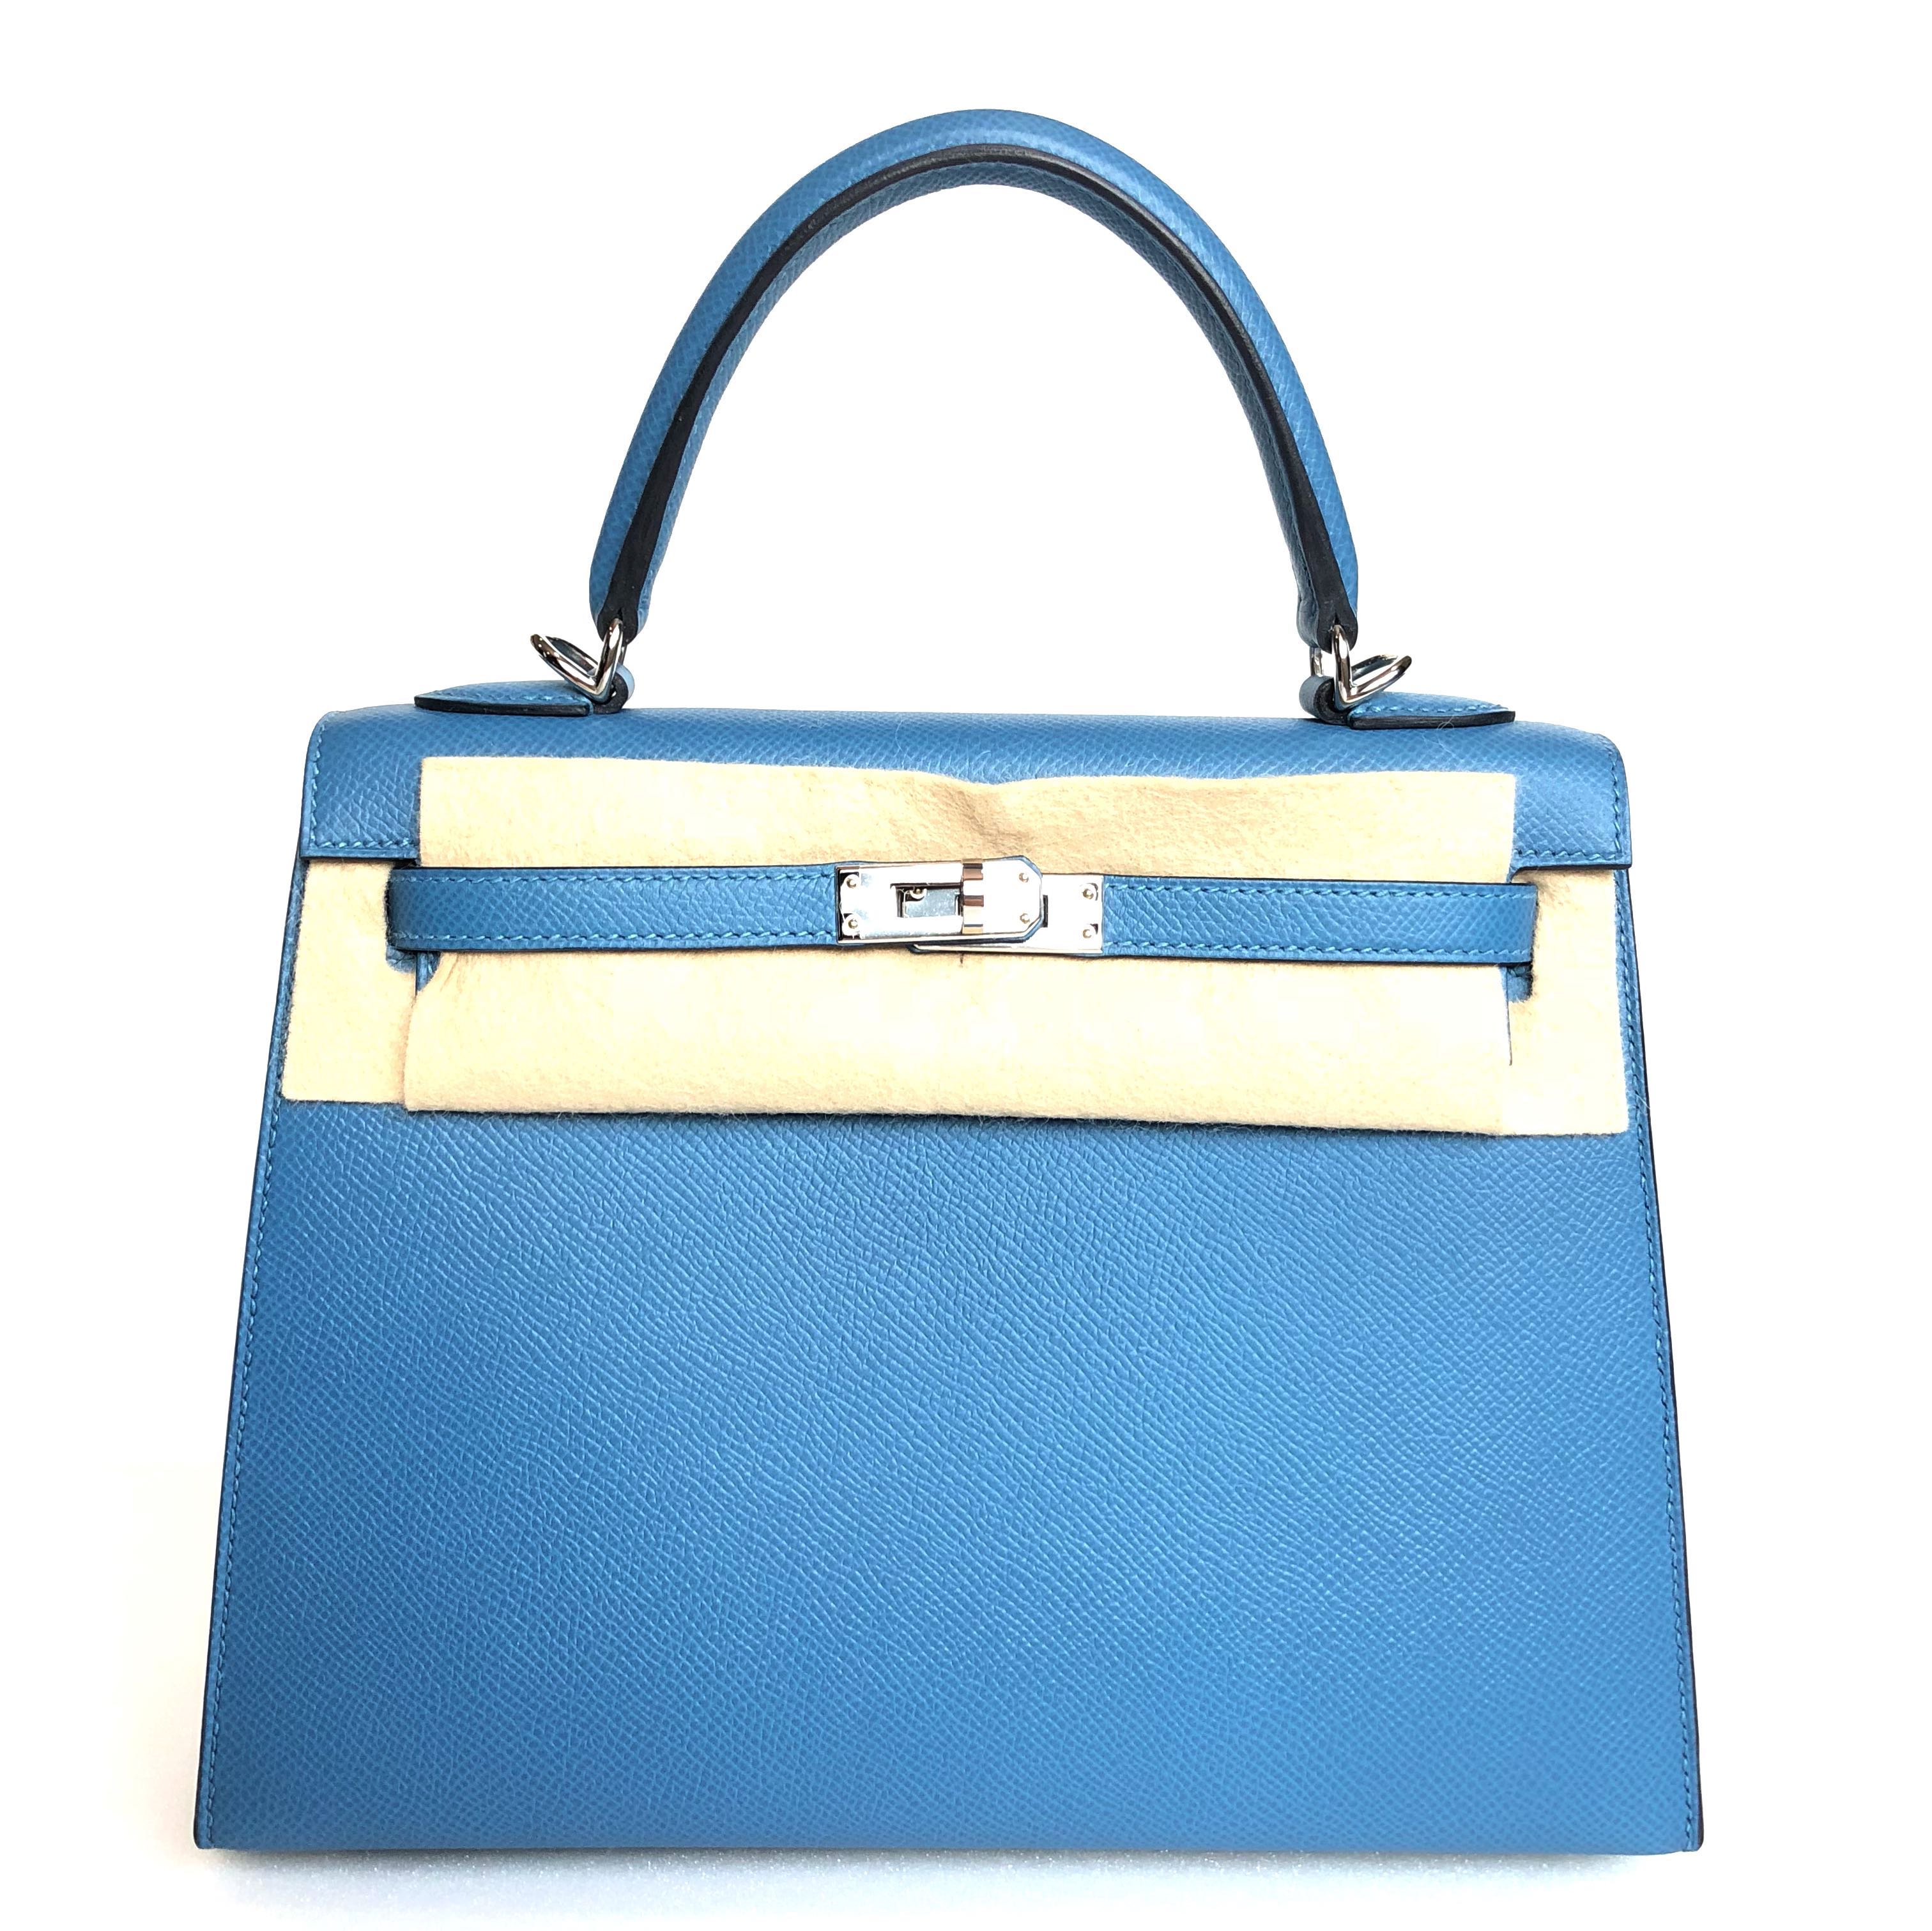 87aac23e03d Hermes - Blue Azure Kelly 25 Sellier in Veau Epsom with PHW